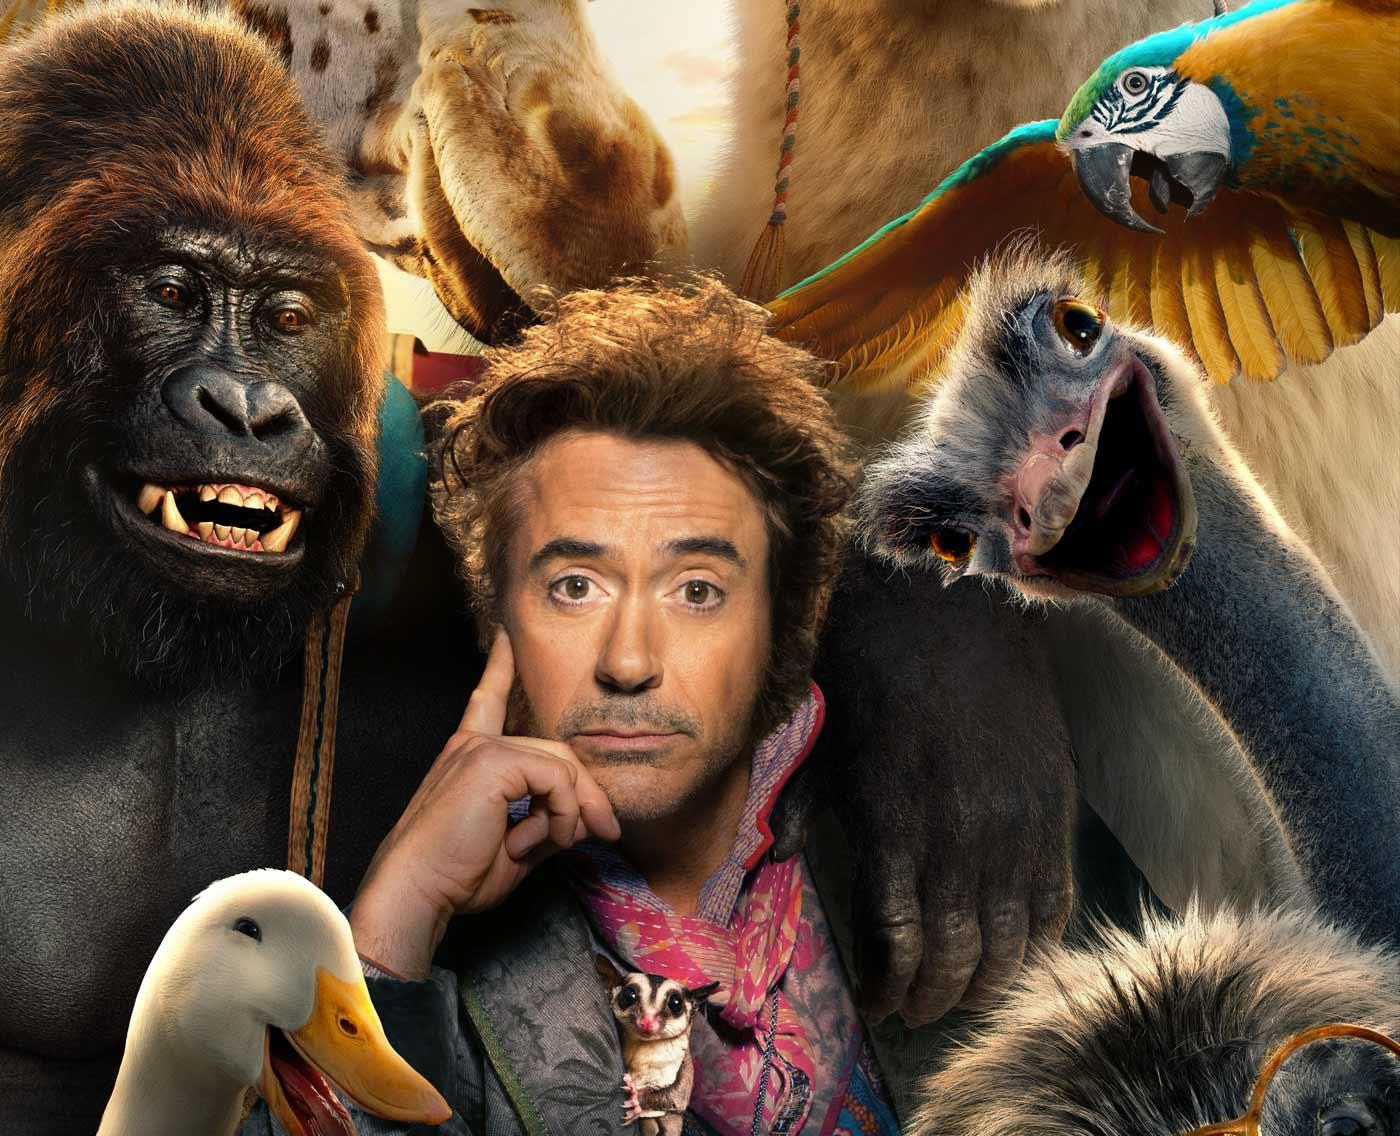 Dolittle Review: RDJ's Newest Project Disappoints